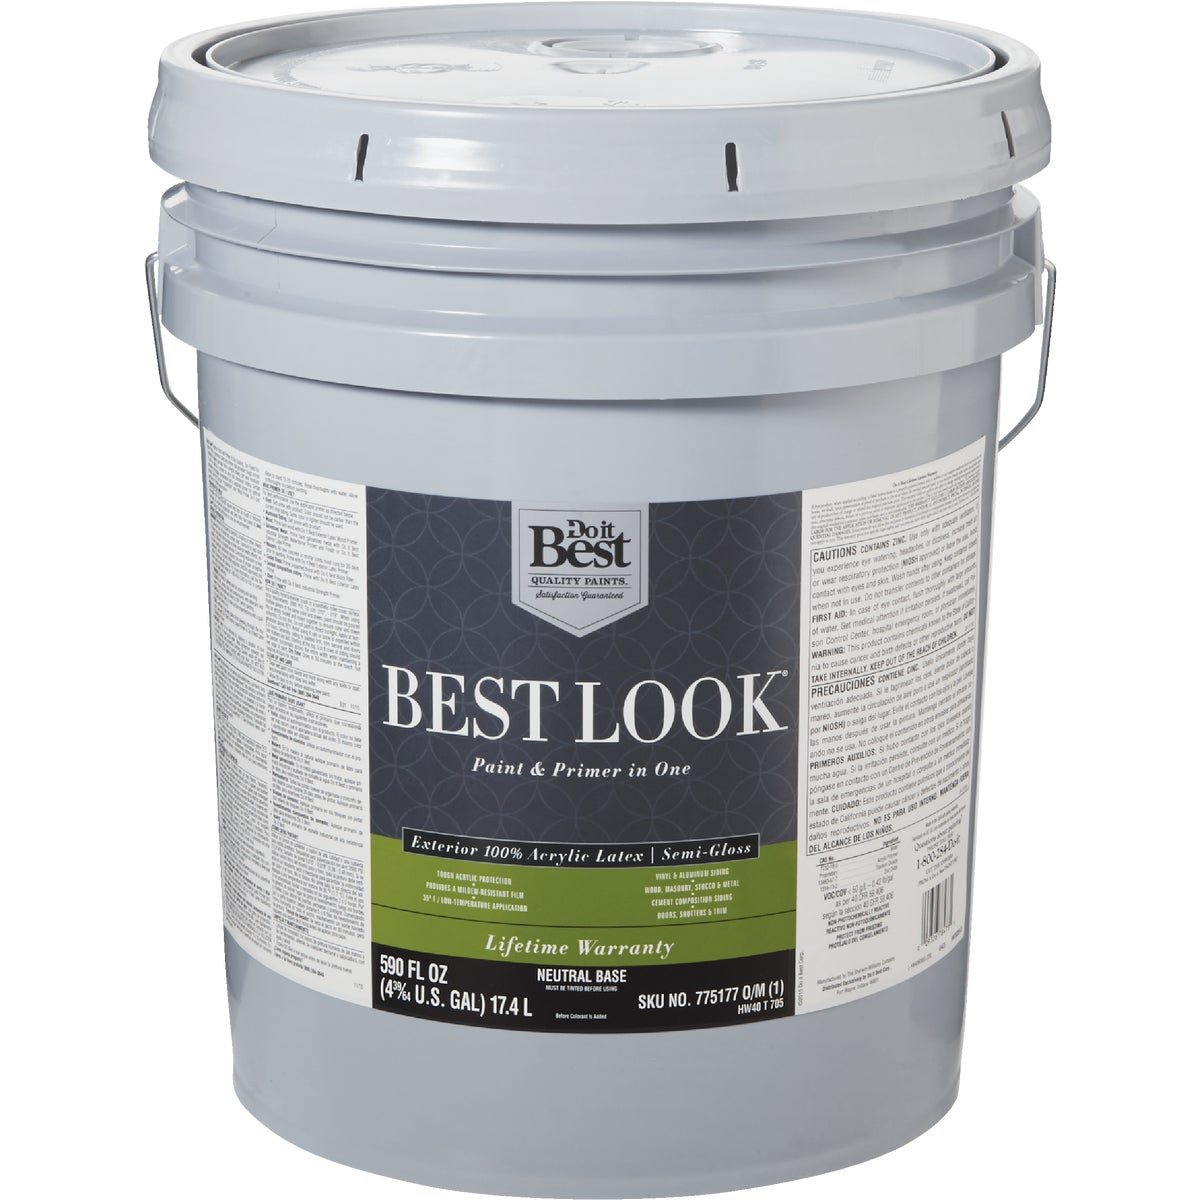 EXT S/G NEUTRAL BS PAINT - HW40T0705-20 by Do it Best